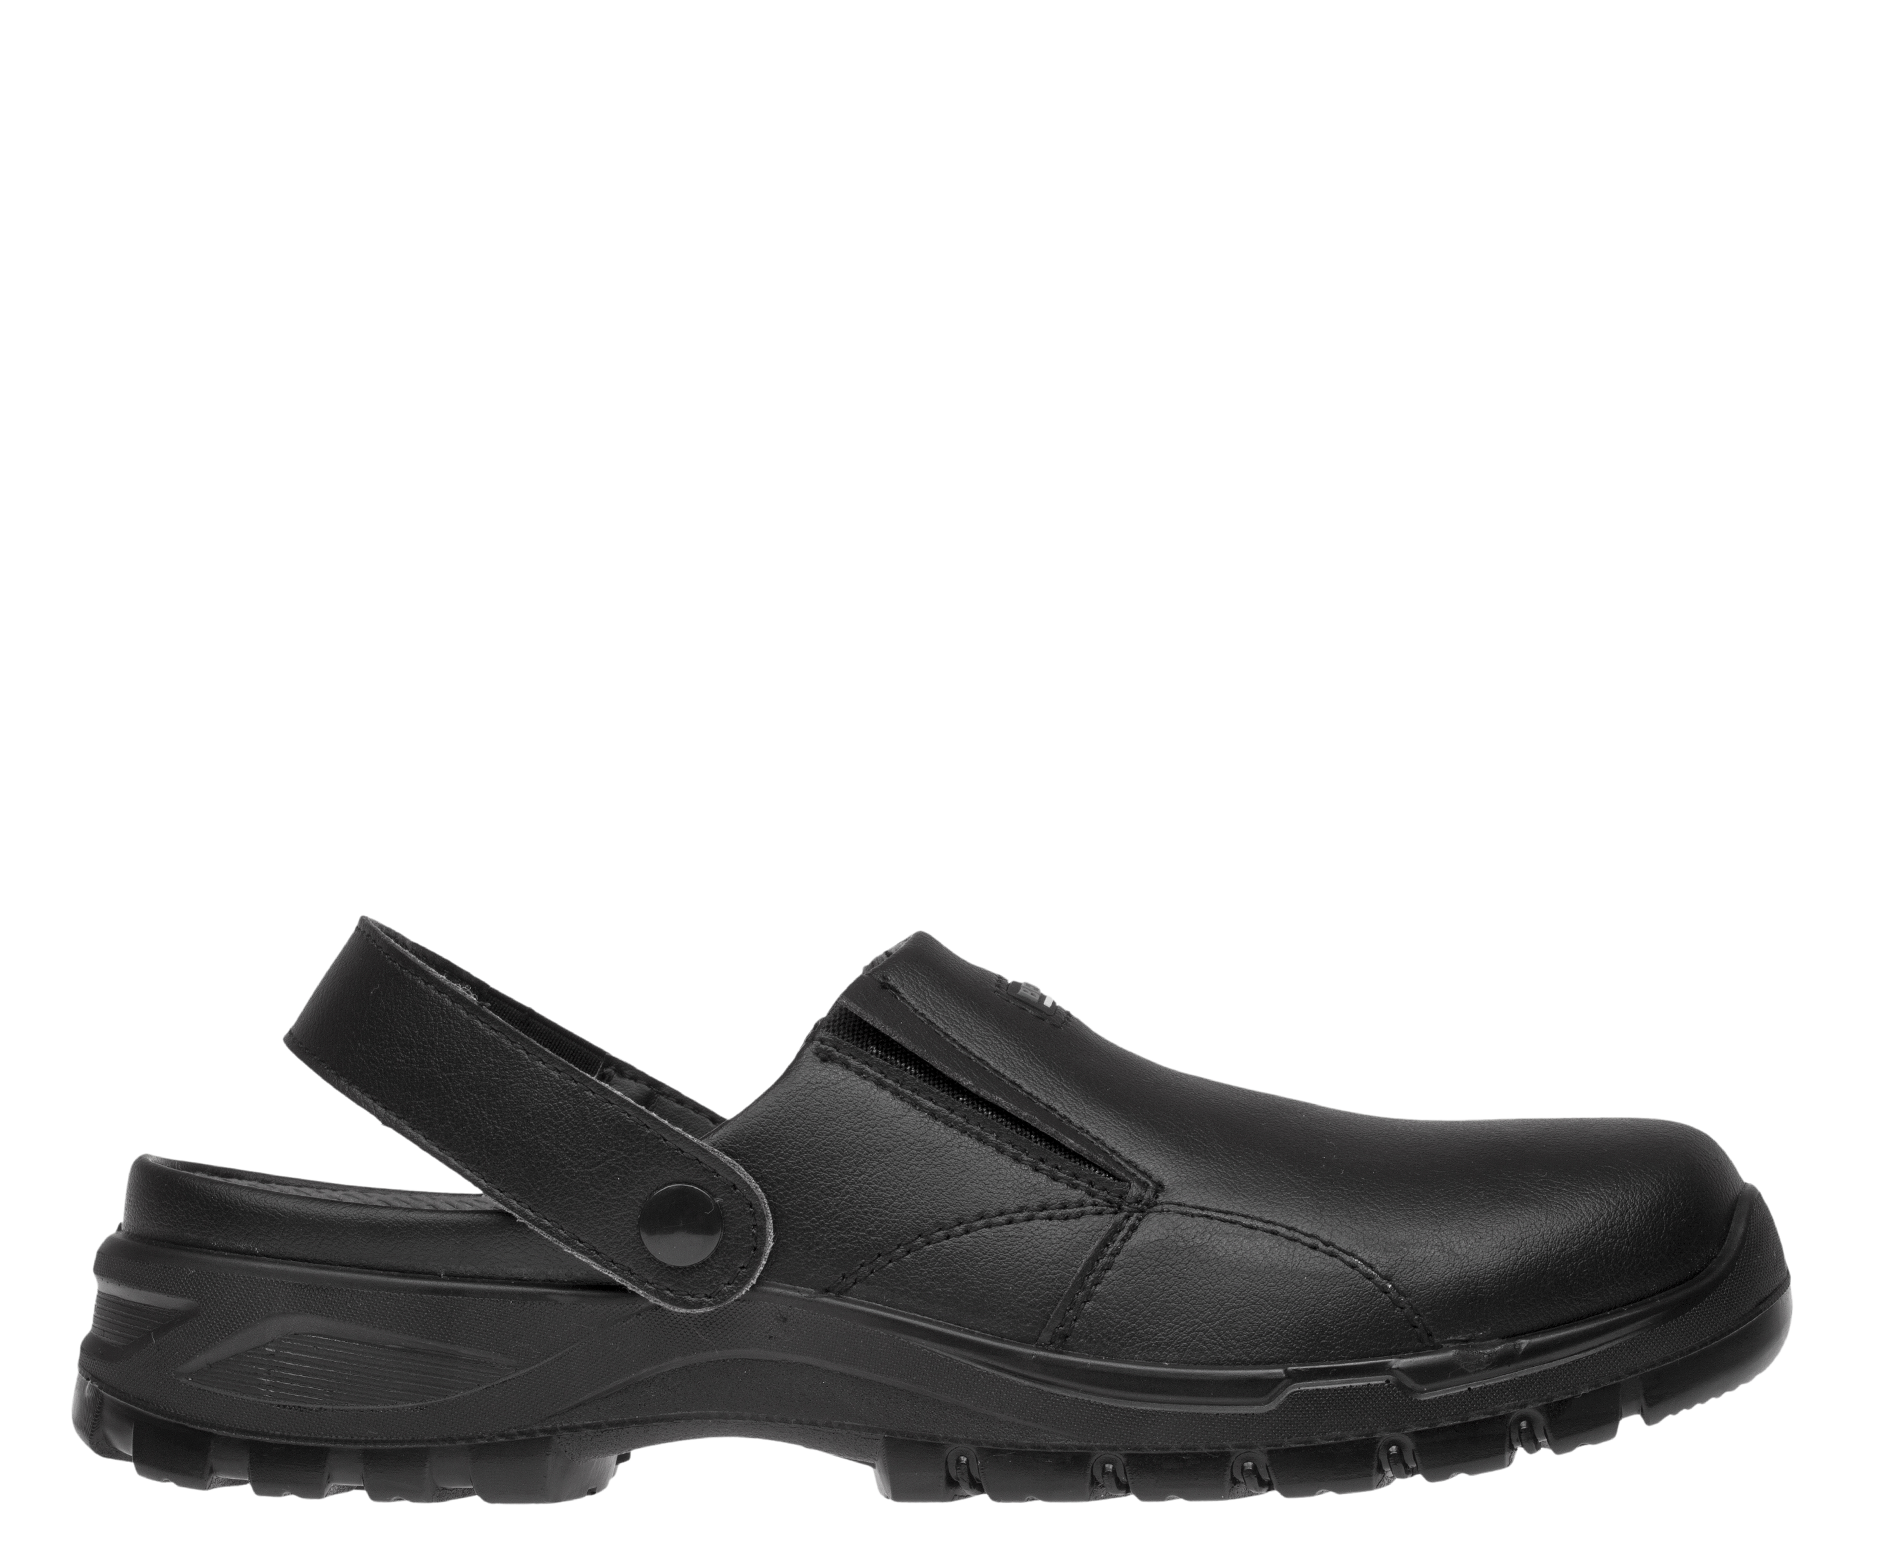 BENNON - BNN BLACK SB SLIPPER